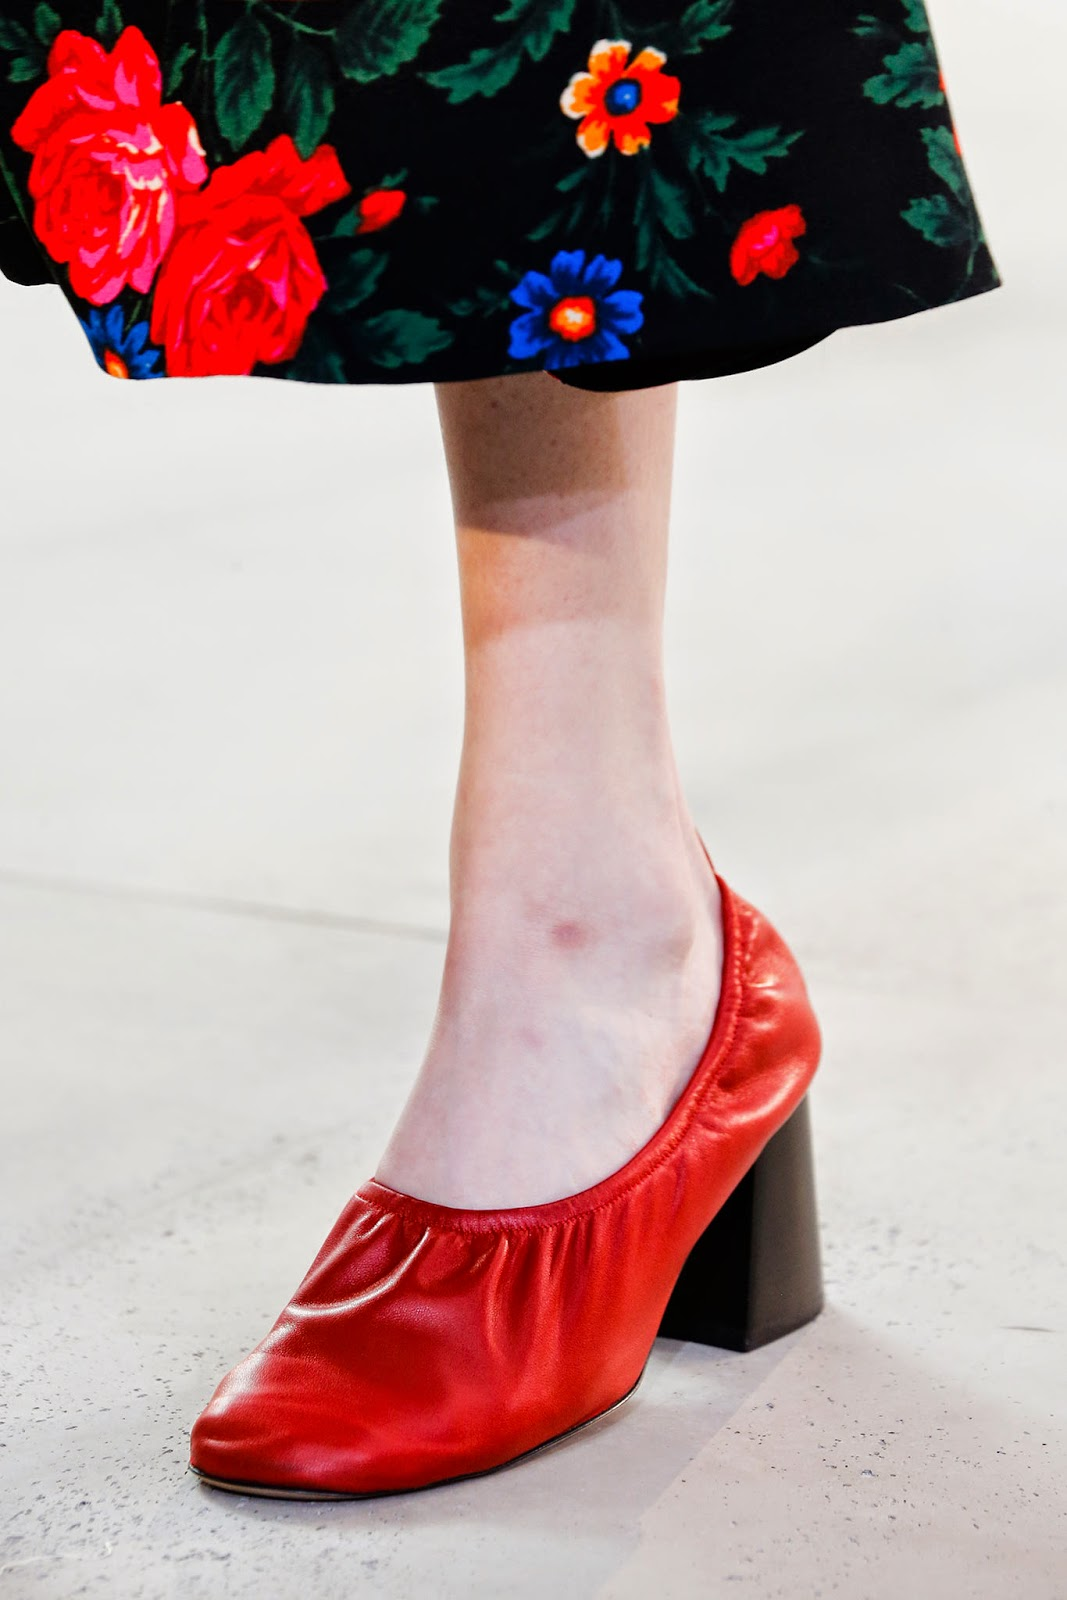 Céline Spring 2015 Ready-to-Wear